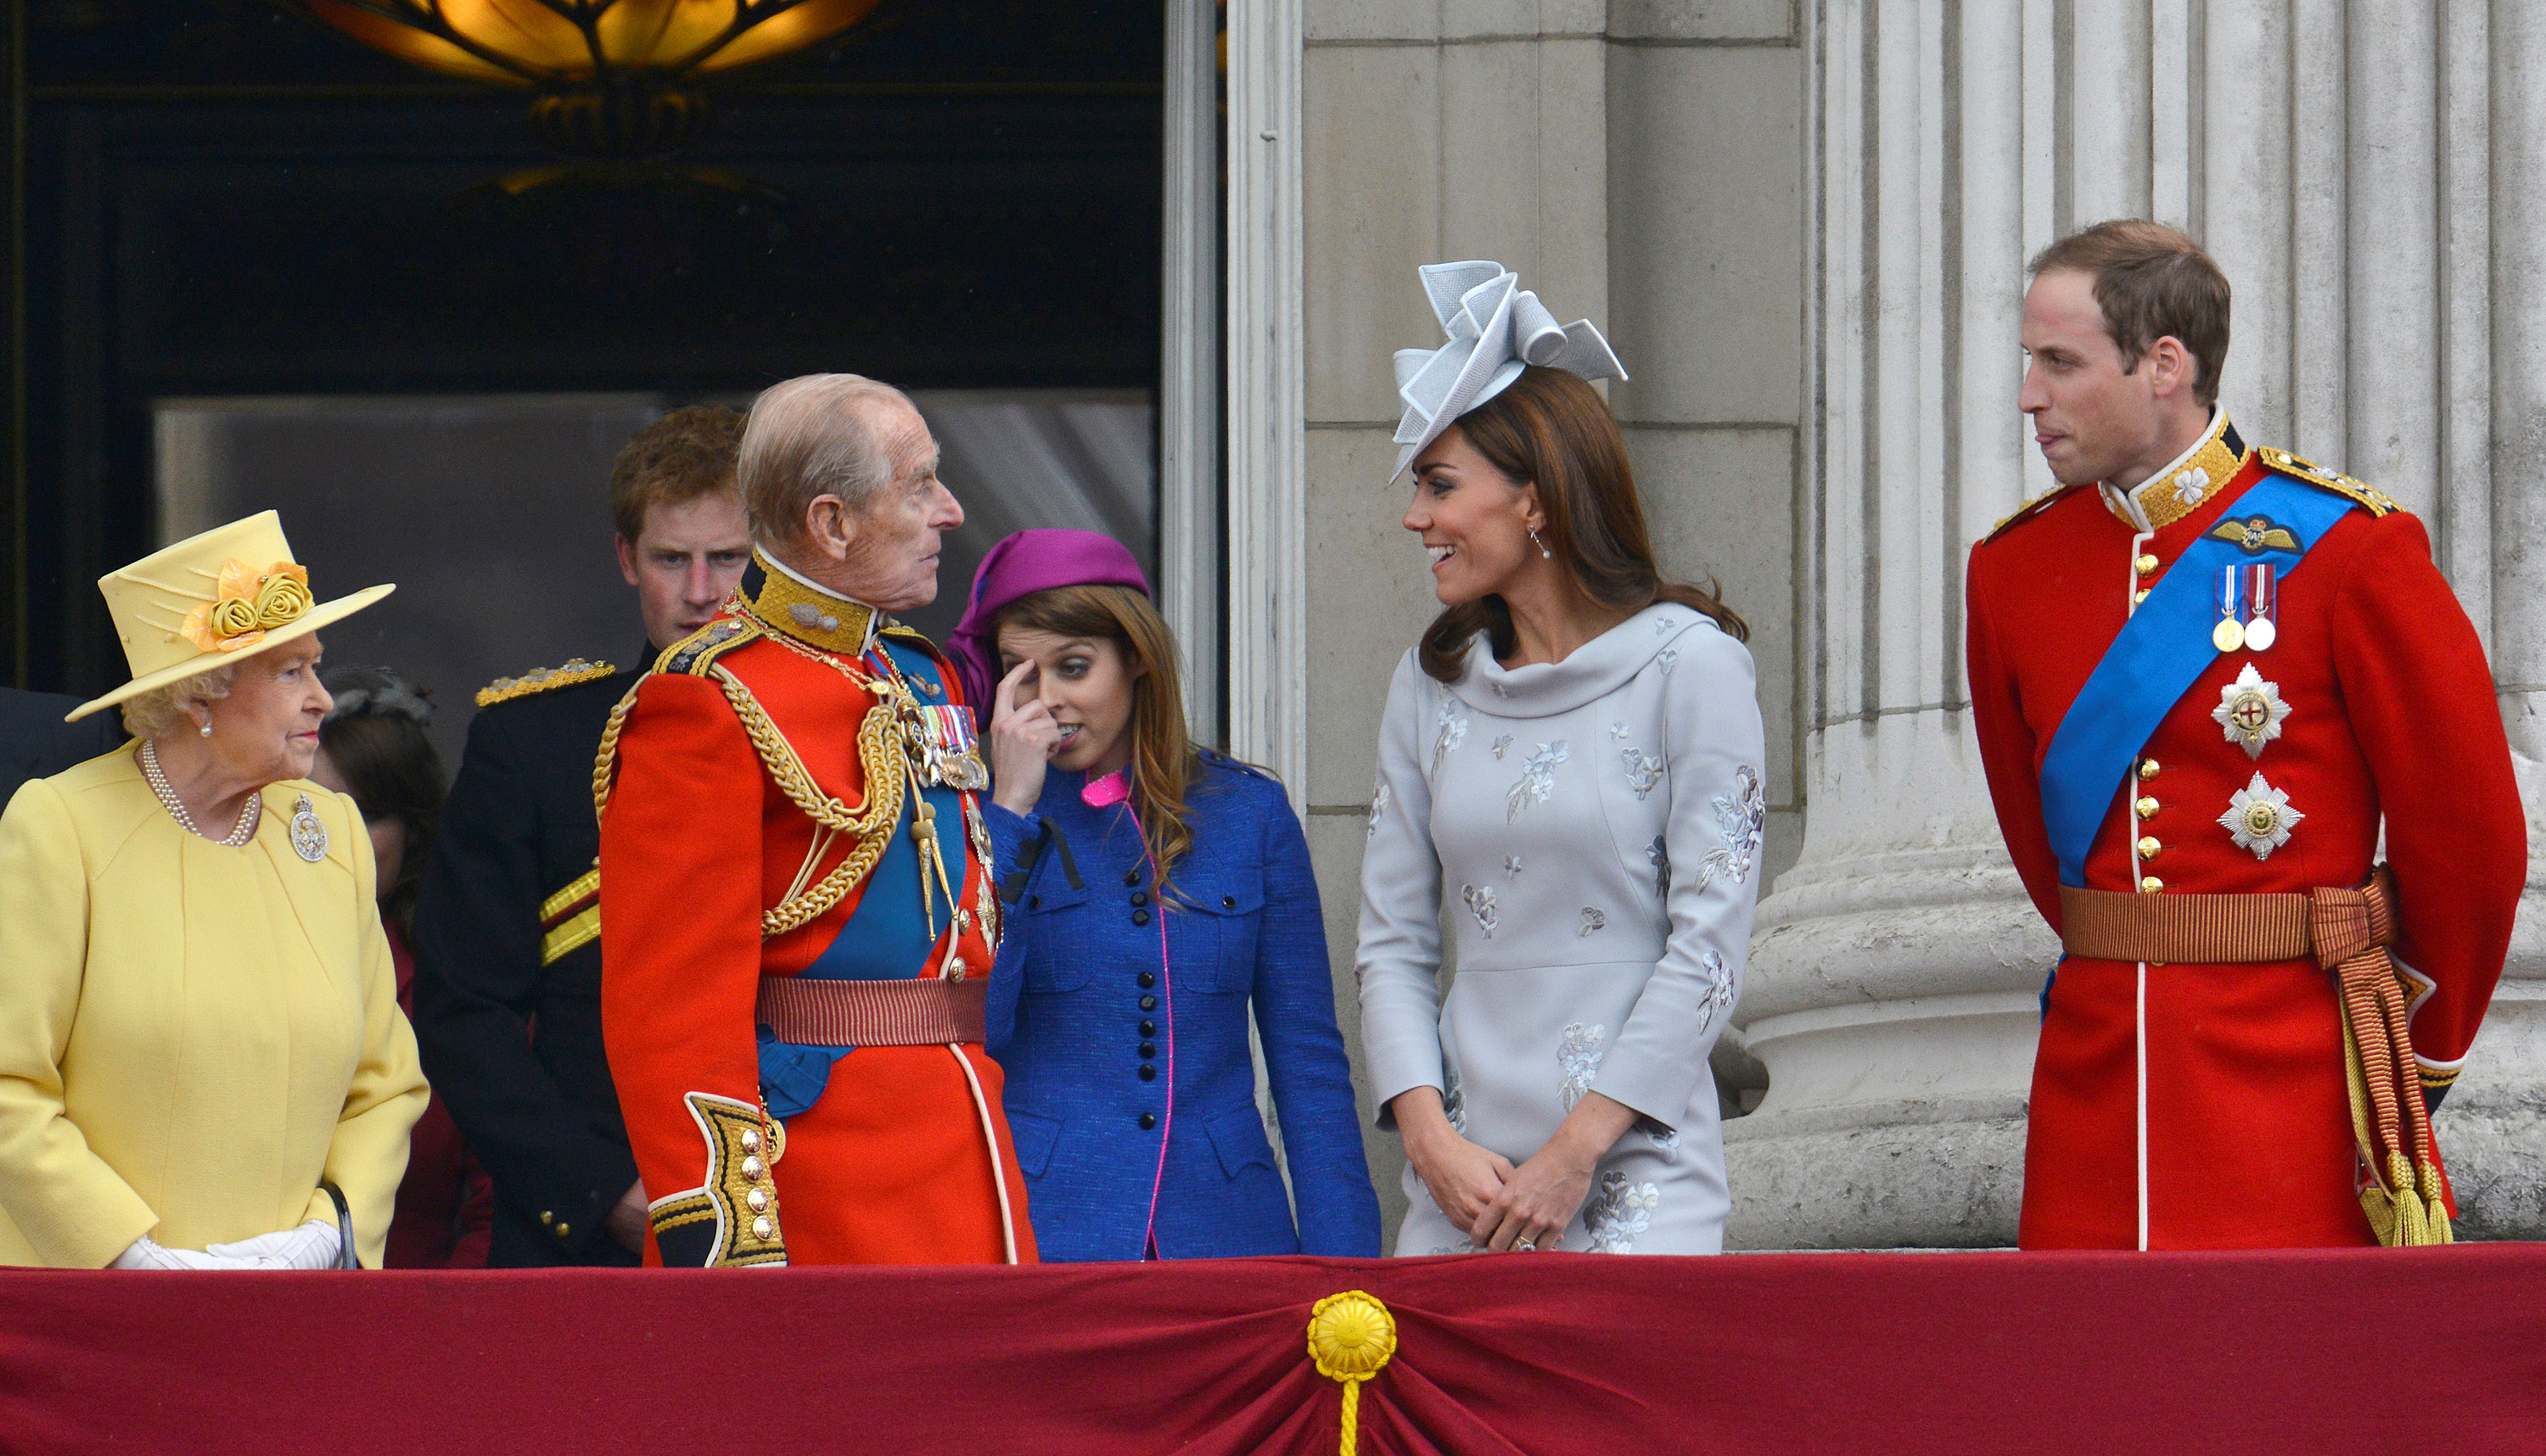 Britain's Queen Elizabeth (L) looks on as her husband Prince Philip, The Duke of Edinburgh, (4R) speaks with Prince William (R) and Catherine, Duchess of Cambridge (2nd R) with Prince Harry (5th R) and Princess Beatrice (3rd R) on the balcony of Buckingham Palace following the Trooping the Colour ceremony in central London June 16, 2012.   REUTERS/Toby Melville/File Photo